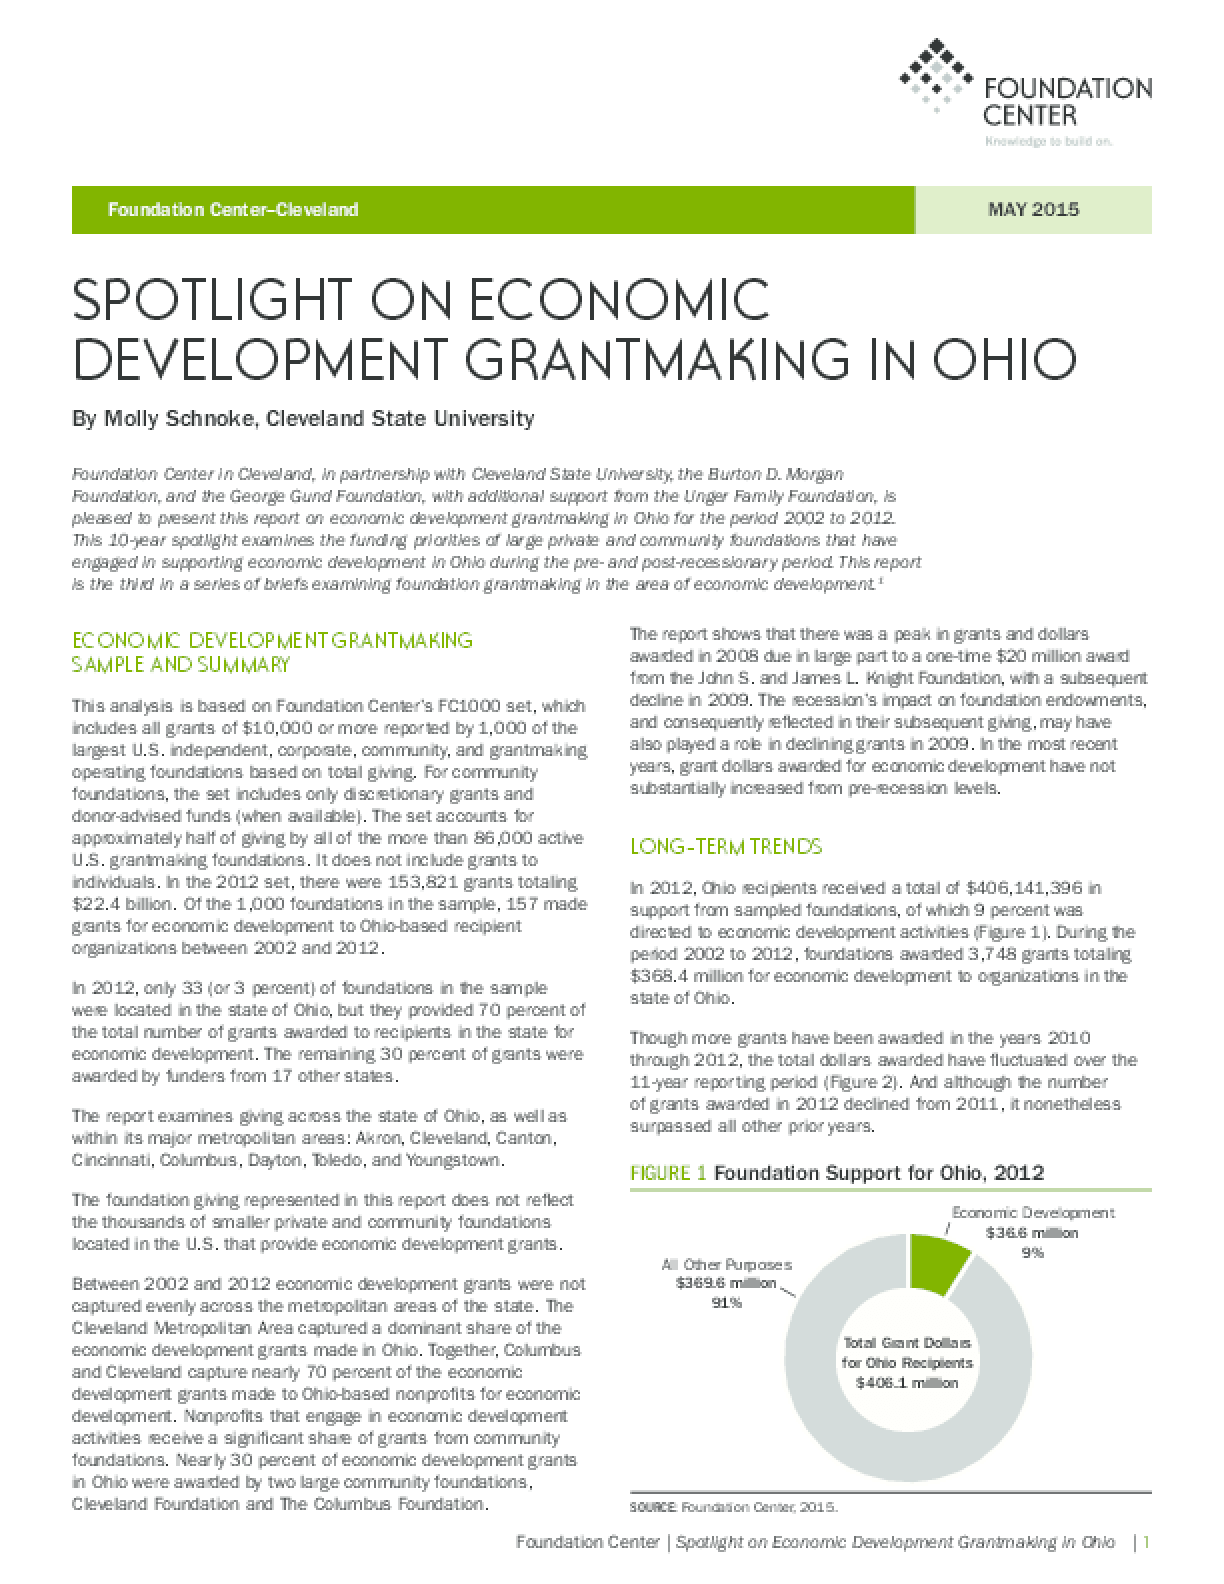 Spotlight on Economic Development Grantmaking in Ohio May 2015